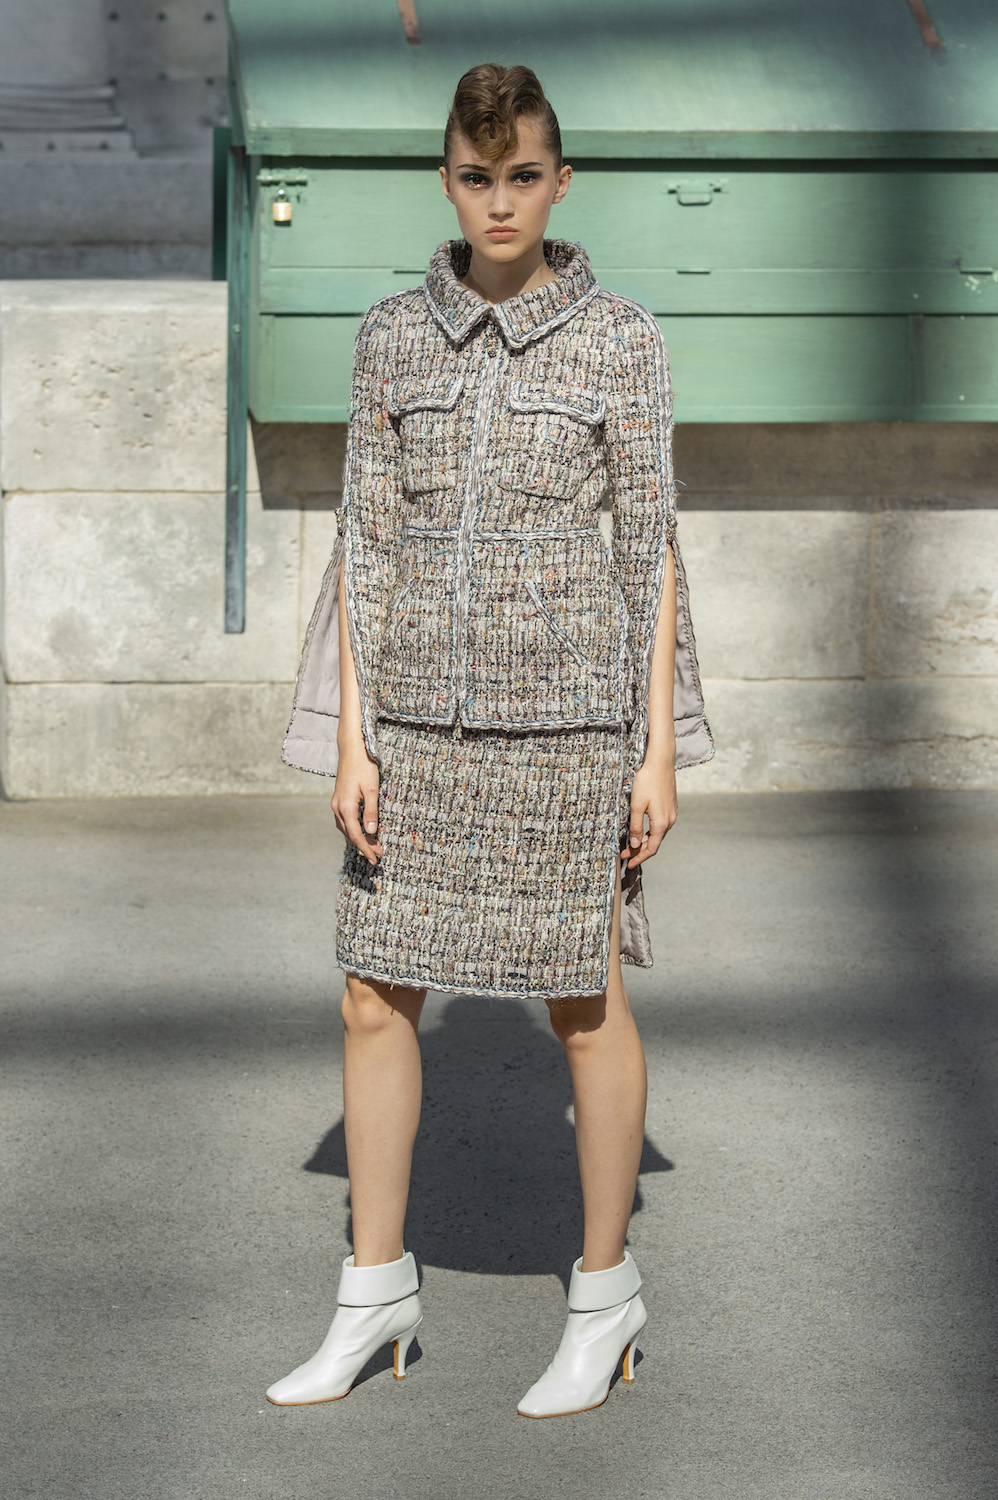 Chanel's Fully Realized Vision of Parisian Fashion Is a Sight to Behold